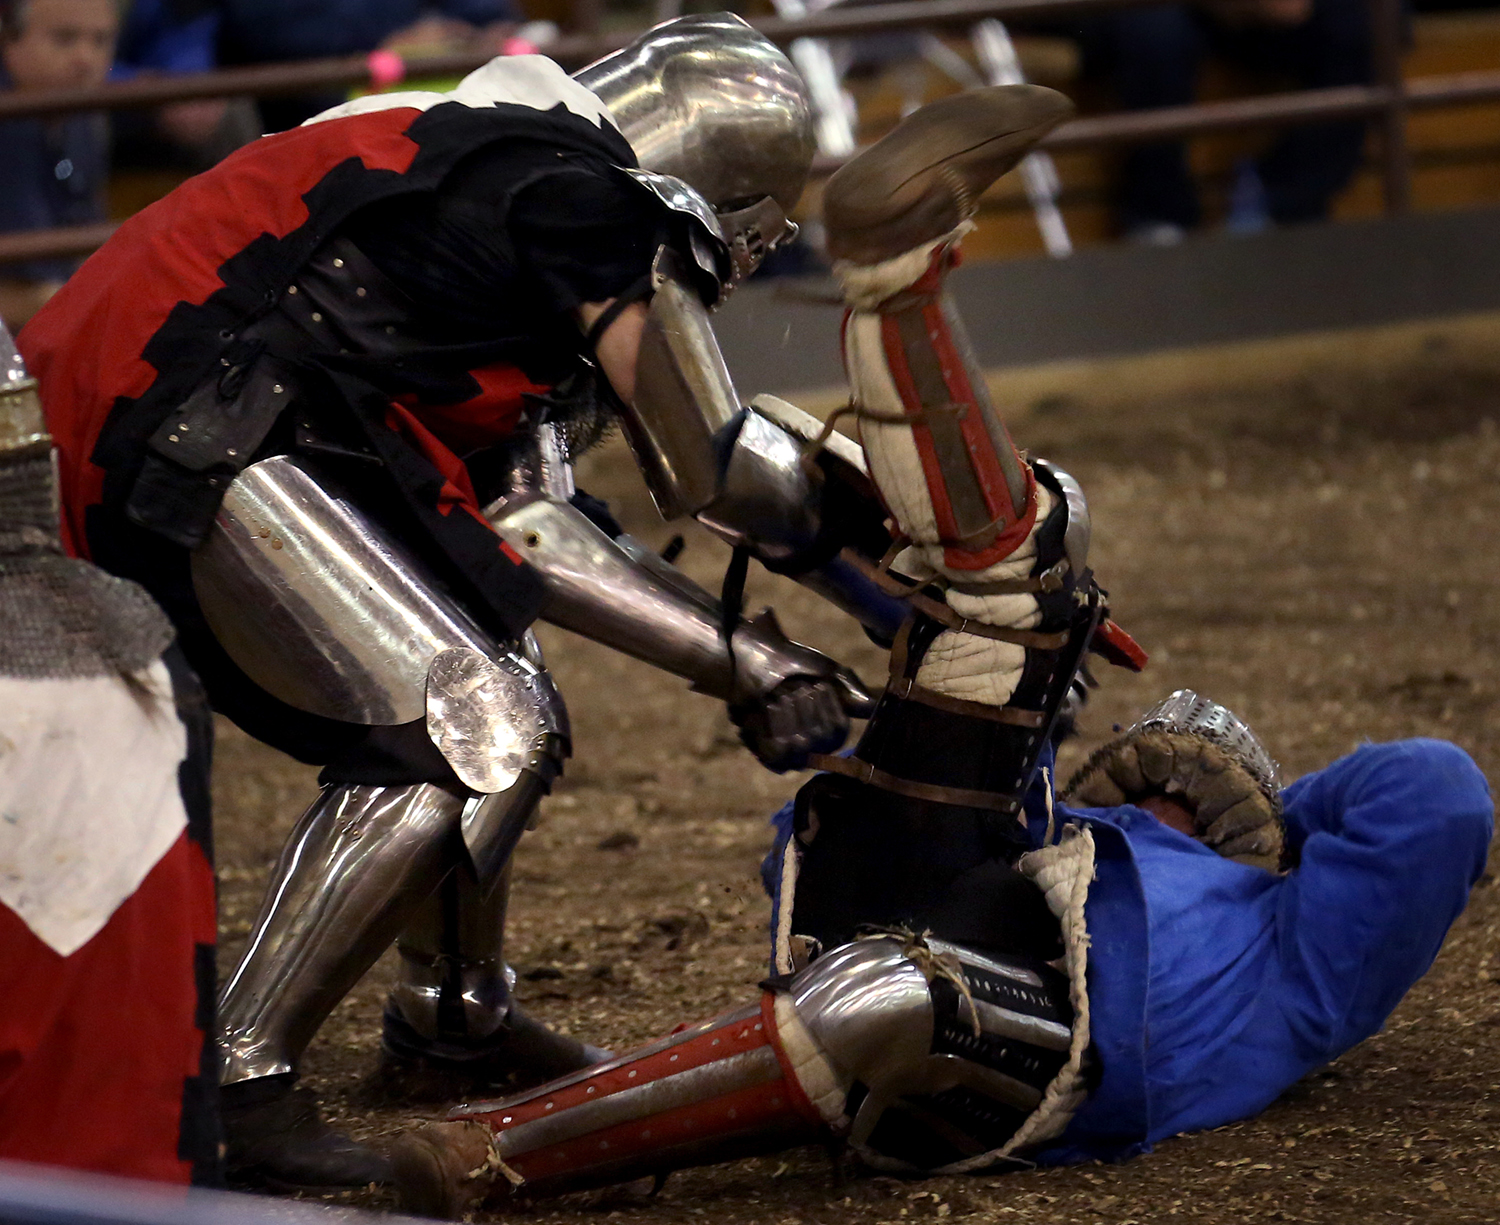 One fighter is knocked down by another on Saturday. The Medieval battle competition Battle of the Nations International Tournament of Chivalry took place at the Livestock Center on the Illinois State Fairgrounds in Springfield on Saturday, Oct. 18, 2014. Armored sword fighters competed in the full contact sport individually and as teams from around the world for medals. David Spencer/The State Journal-Register